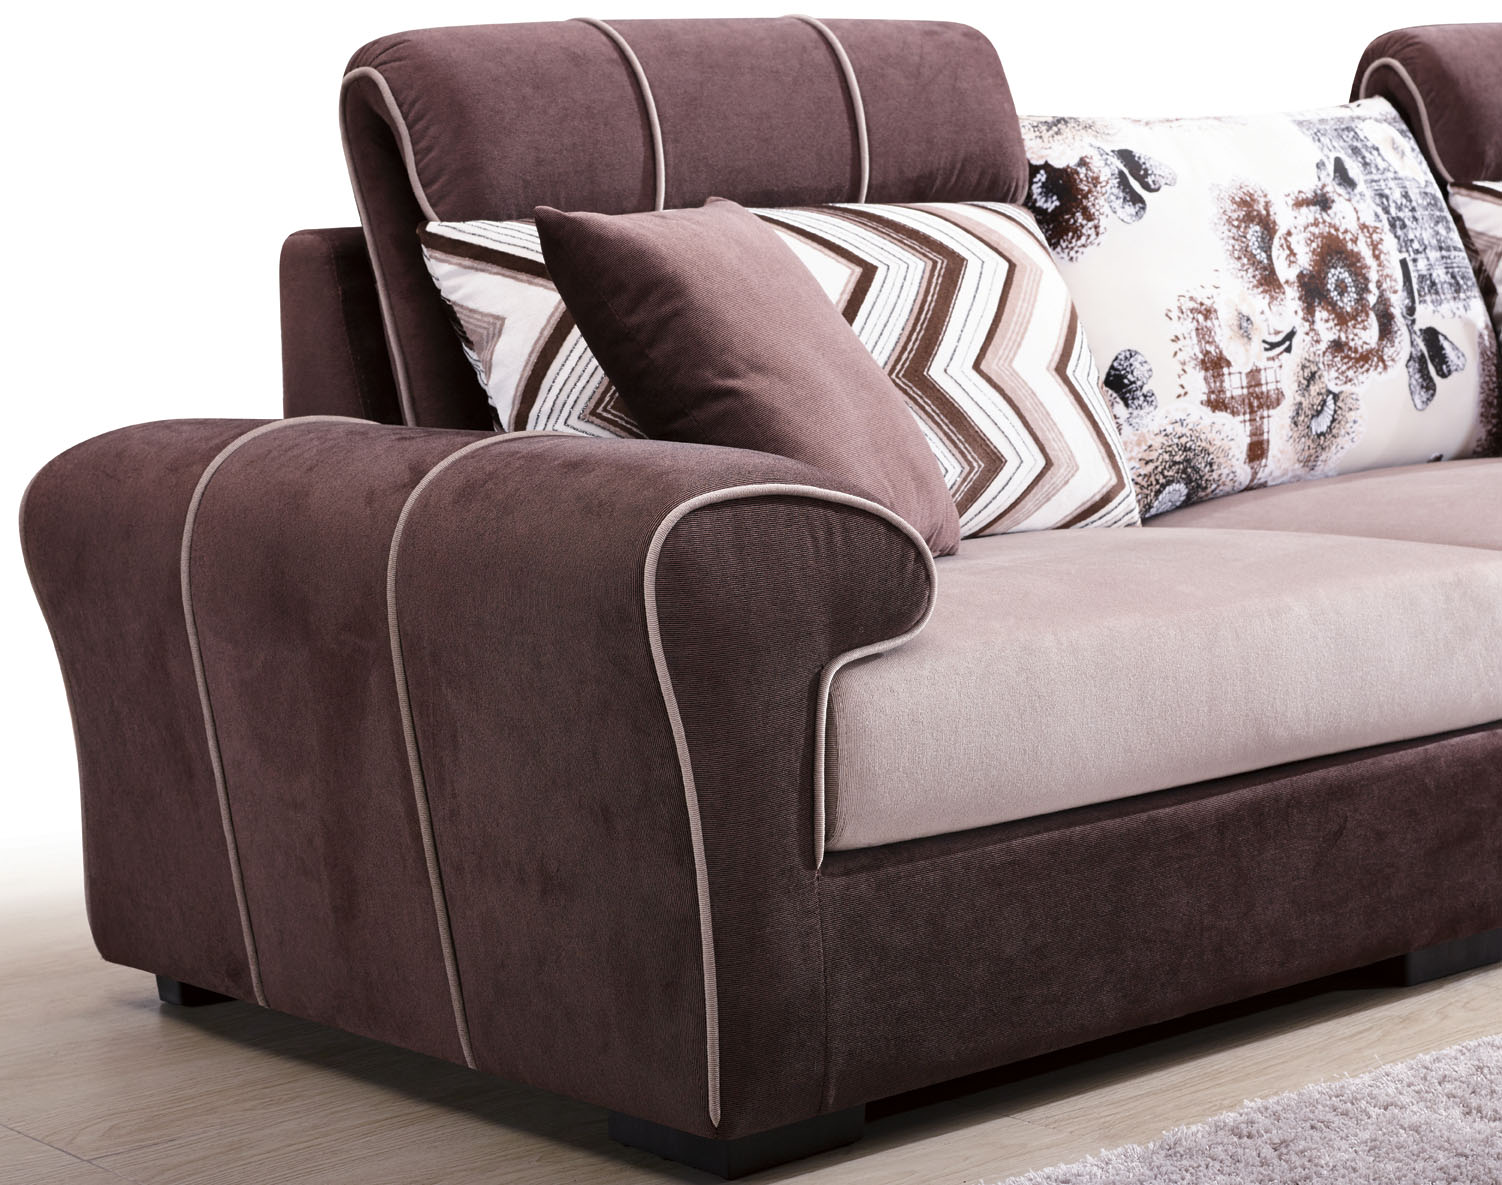 Modern Simple Fabric Couches L.AF527